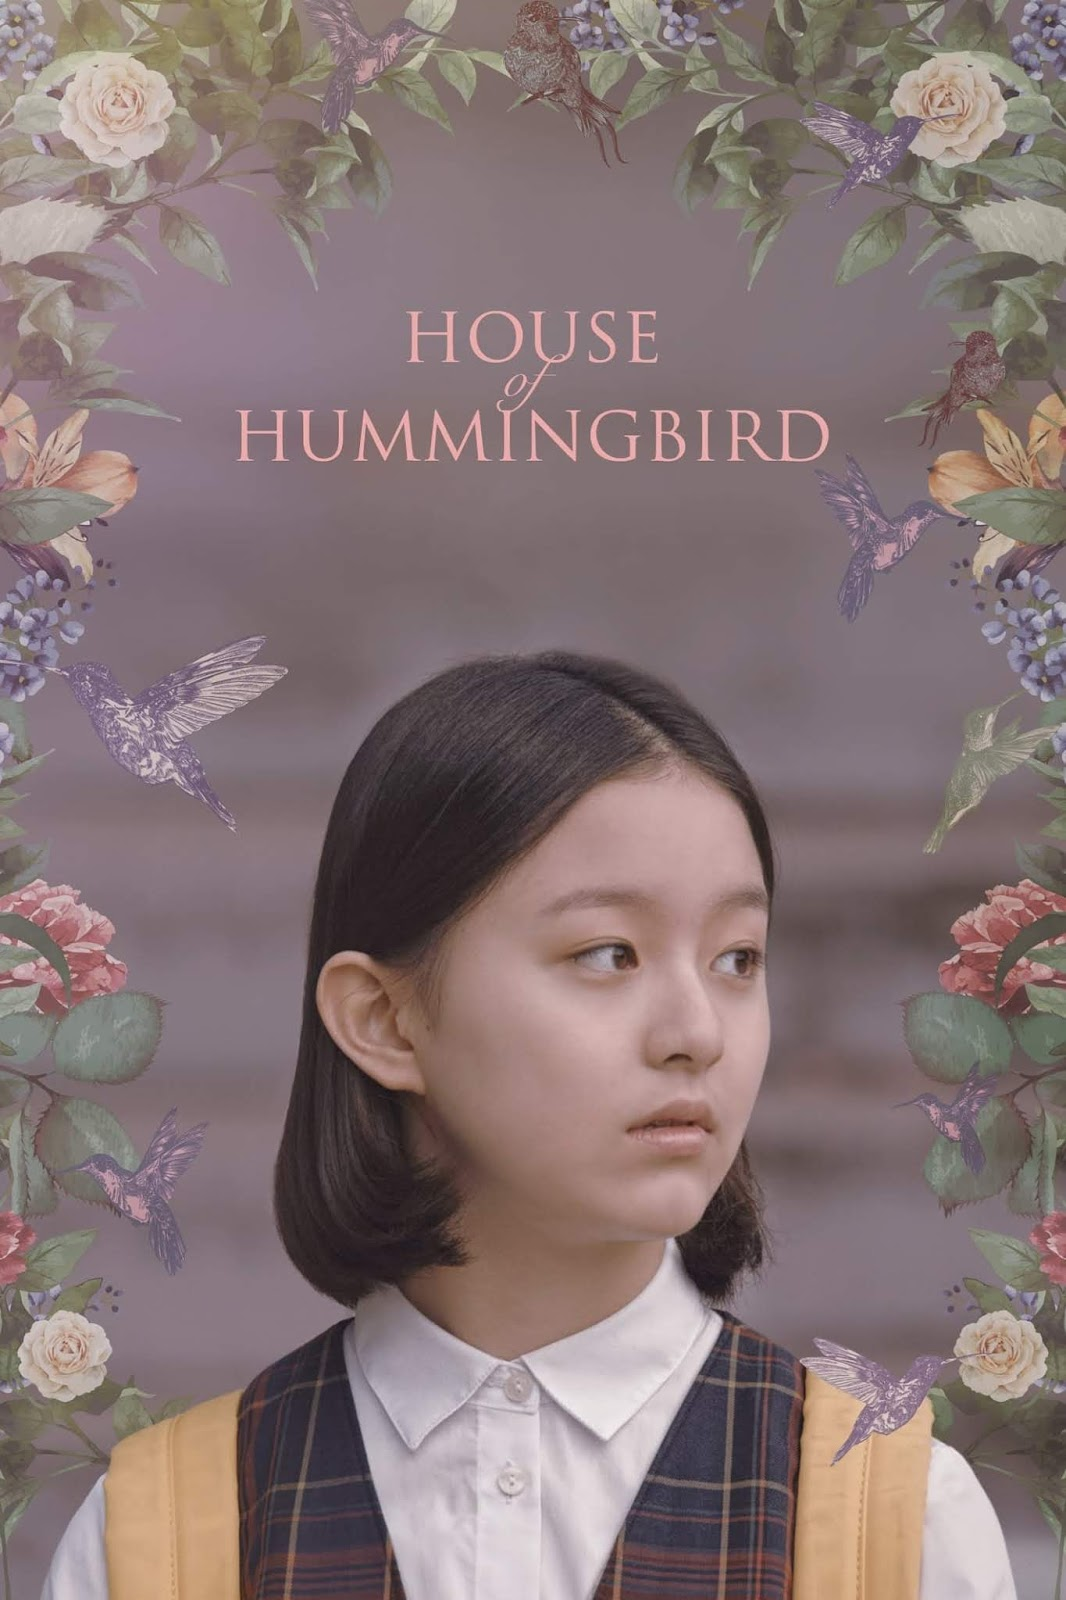 House of Hummingbird (2018) Full Movie